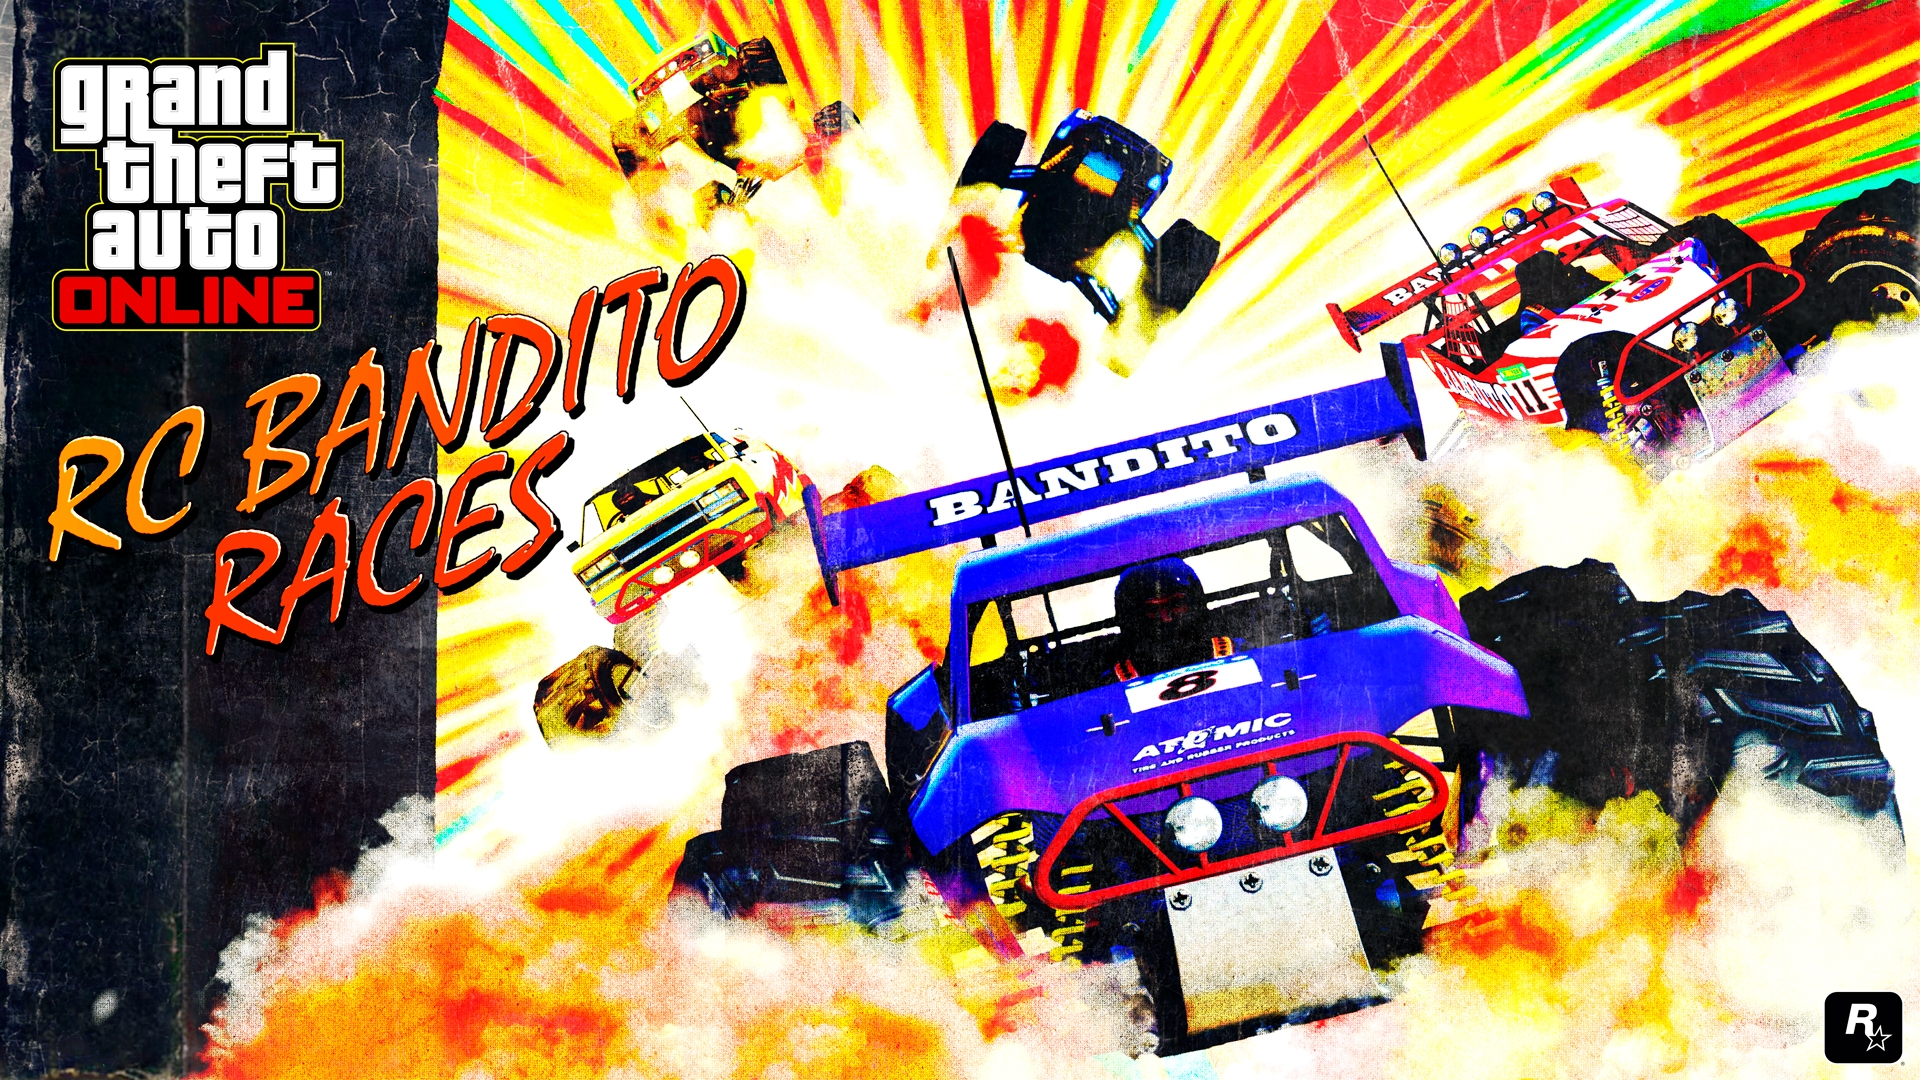 Play 7 New RC Bandito Races - Rockstar Games